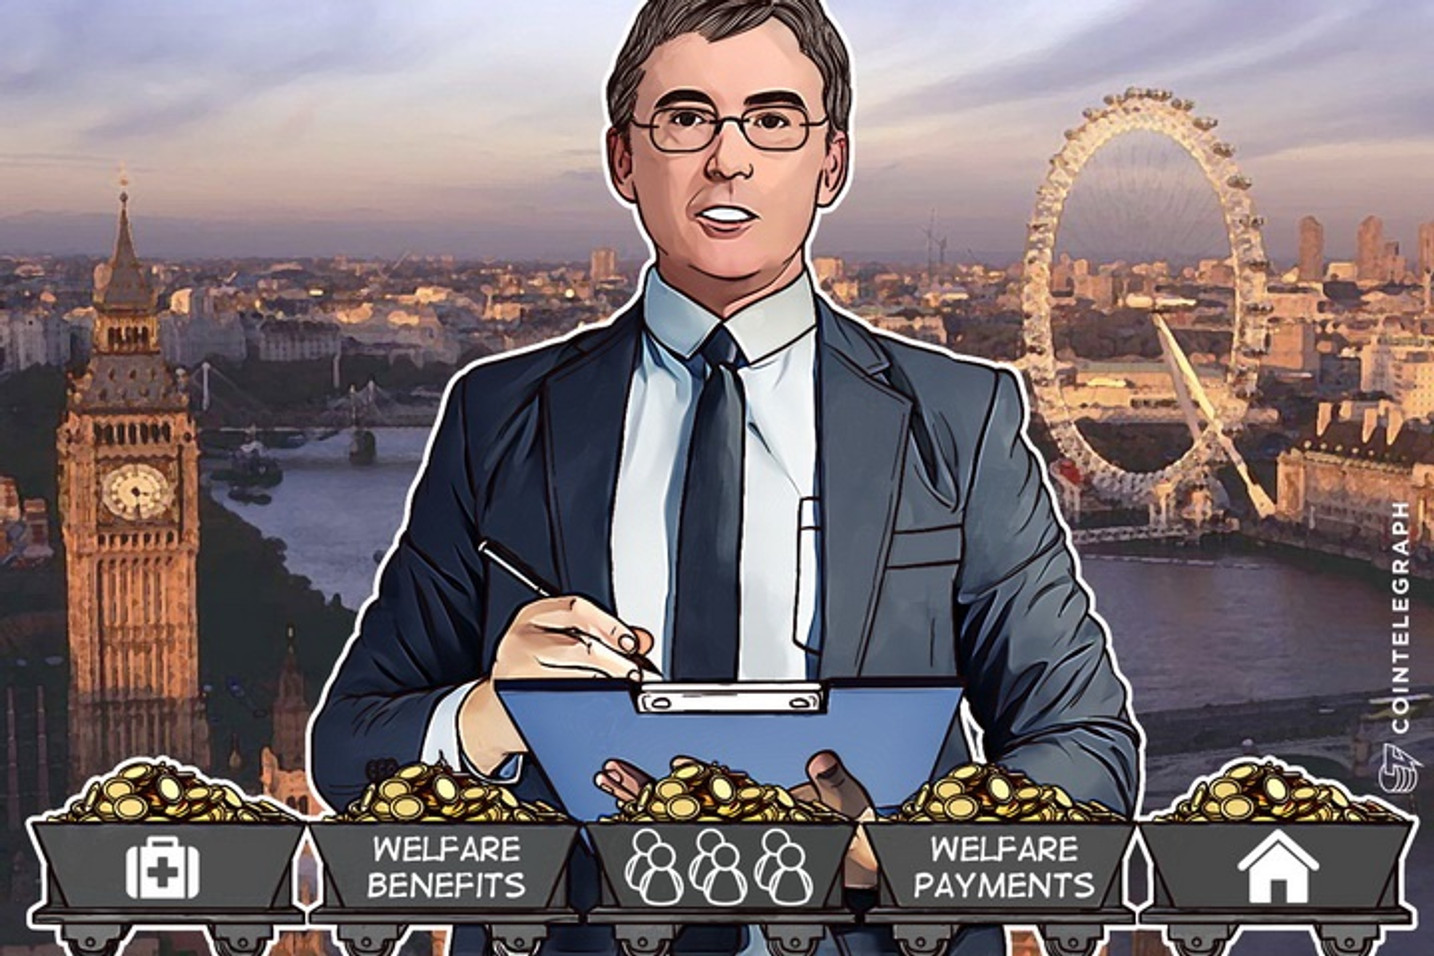 Trap to Spy on Benefits Spending? UK Tests Blockchain for Welfare Payments